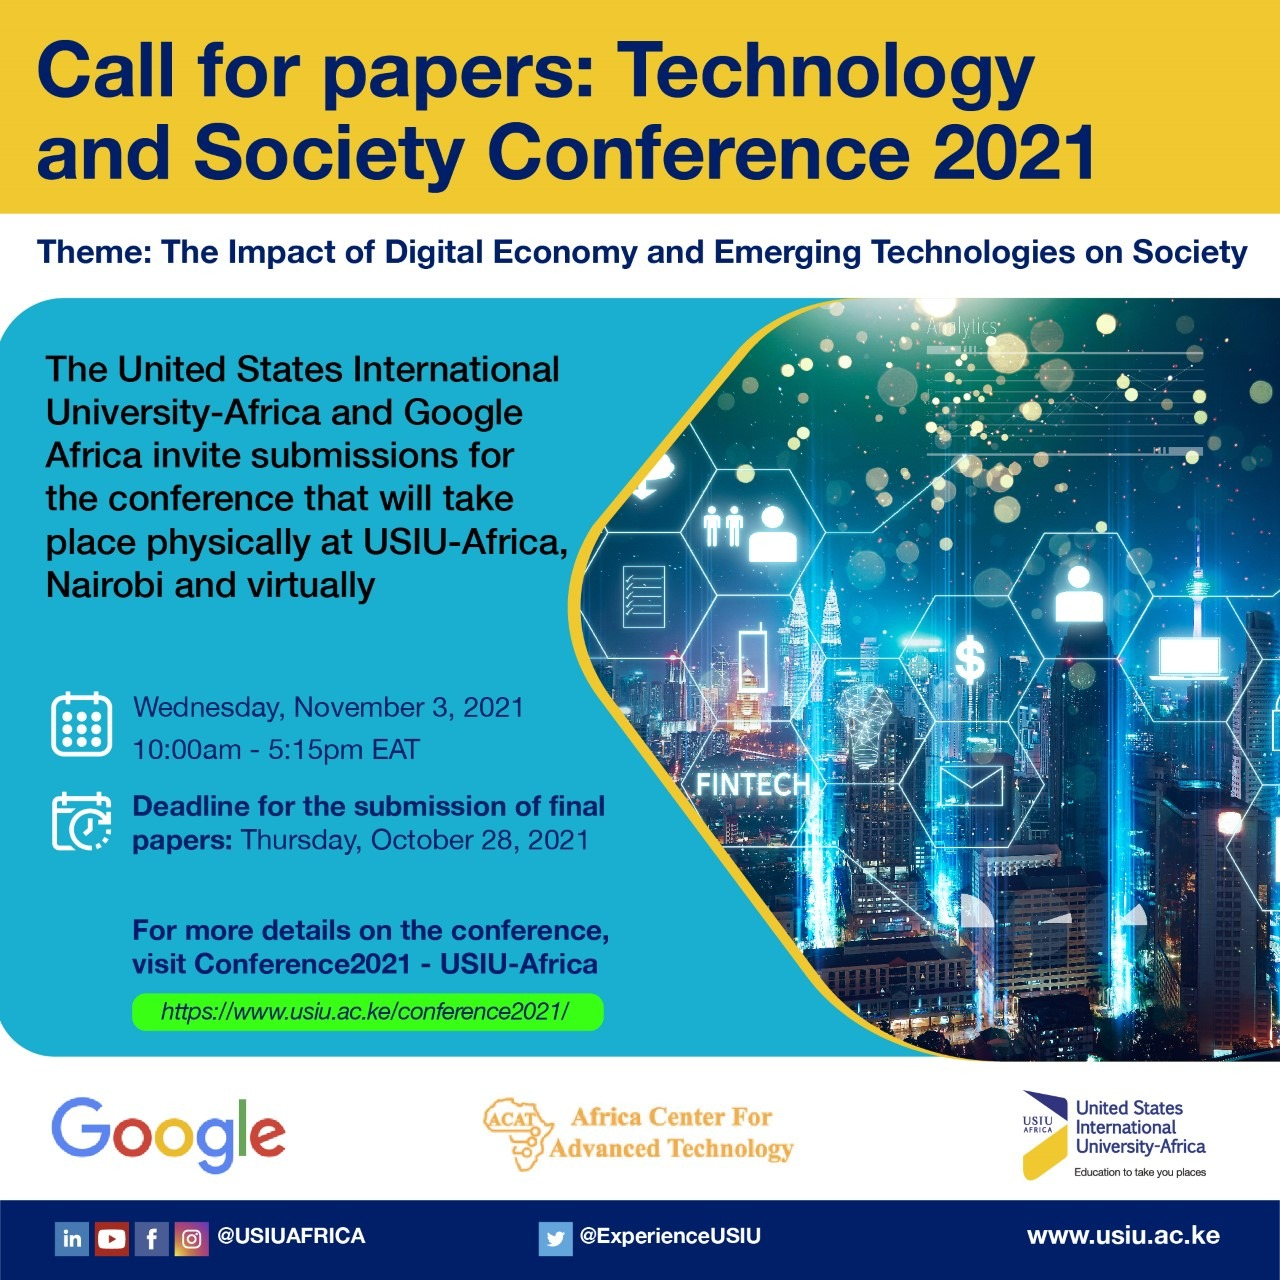 TECHNOLOGY AND SOCIETY CONFERENCE 2021